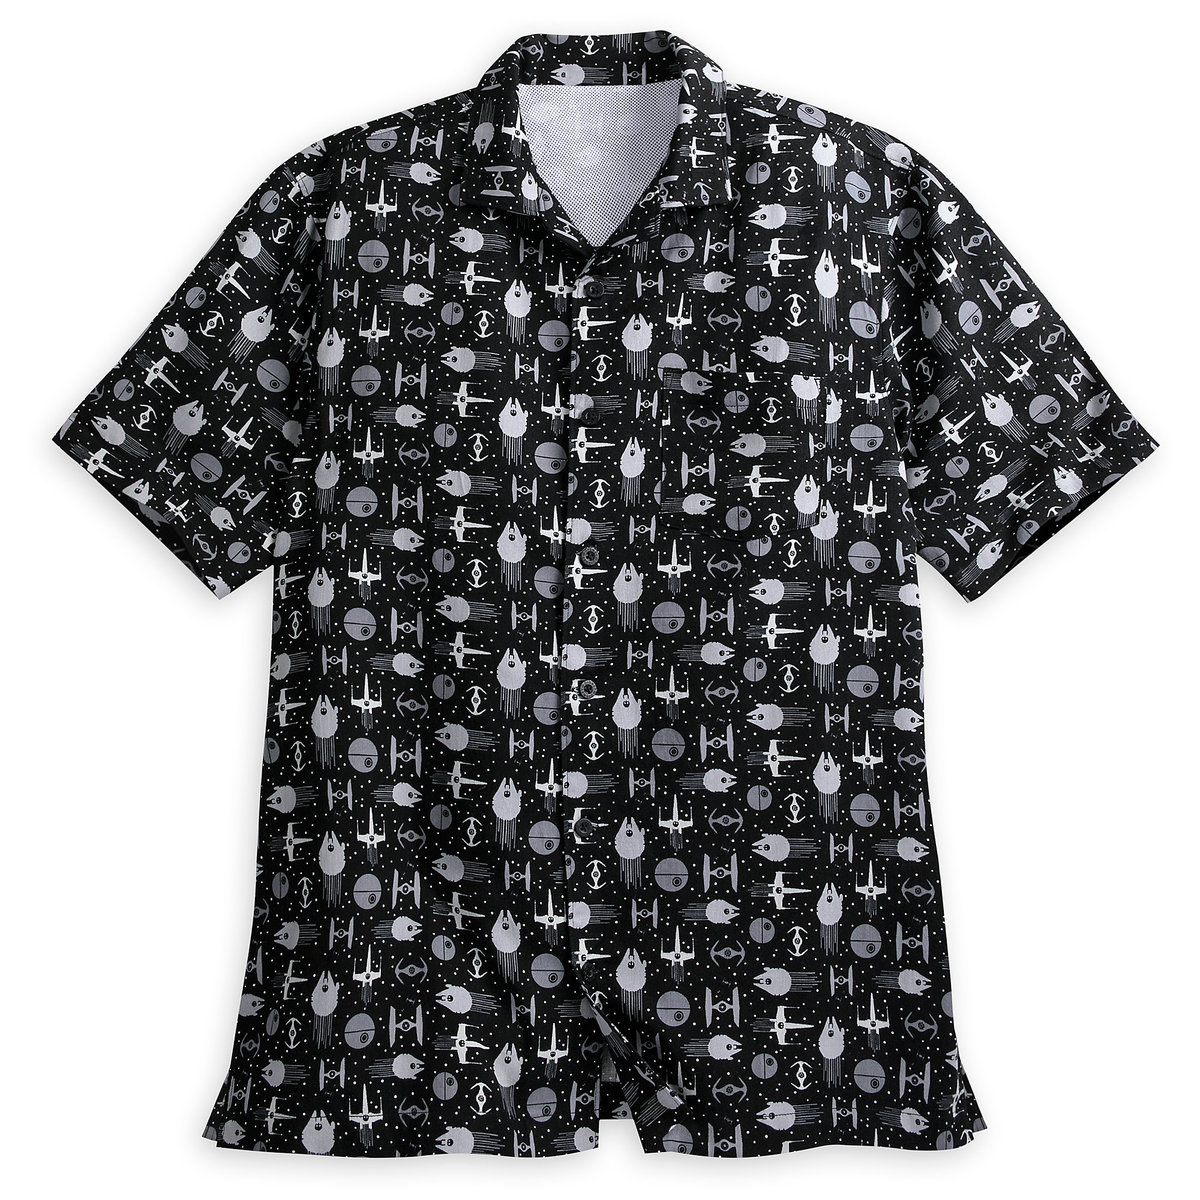 225cab8f Product Image of Star Wars Button-Up Shirt for Men # 1